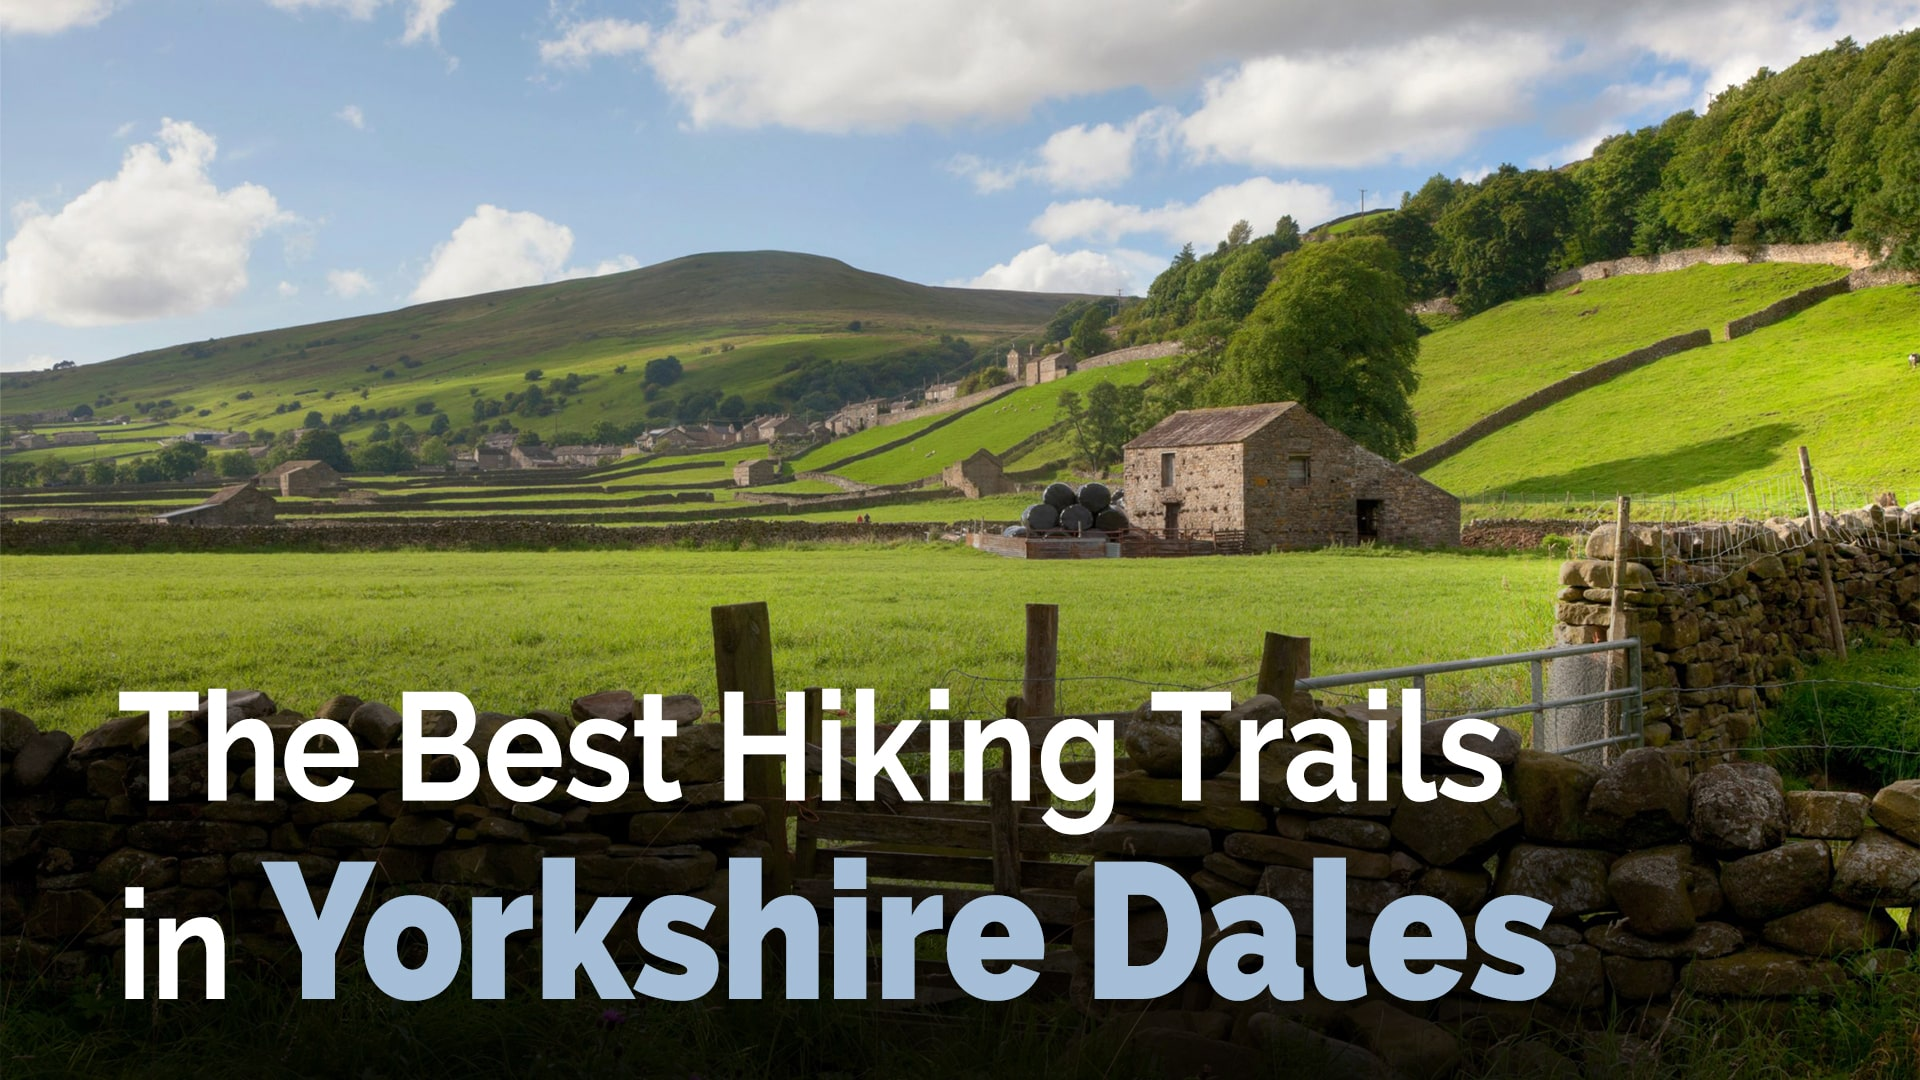 The Best Hiking Trails In Yorkshire Dales